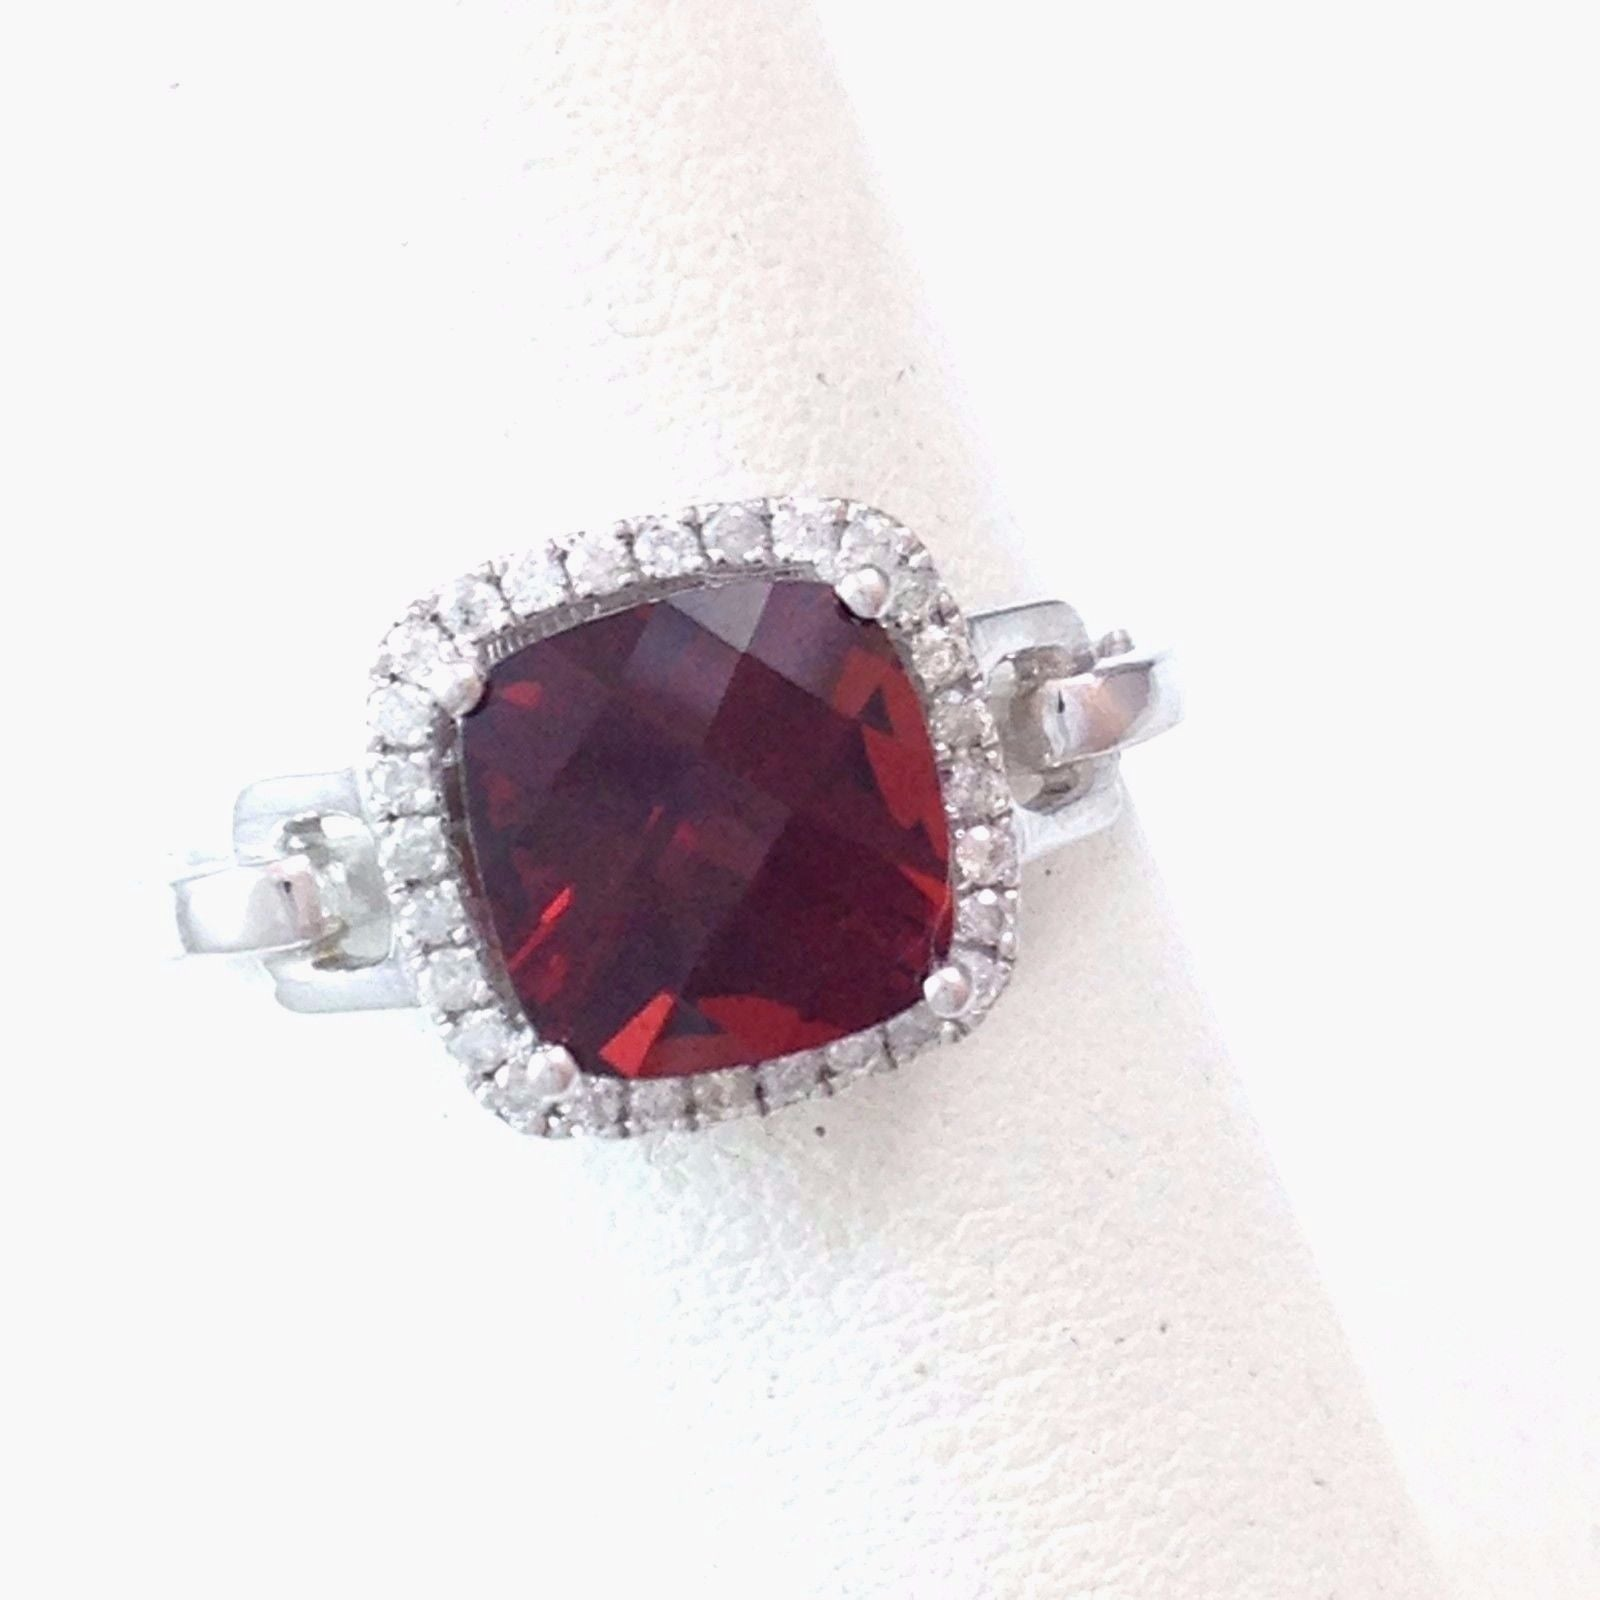 Genuine 2.75 ct Garnet & Diamond Ring 14K white gold $1950 NWT